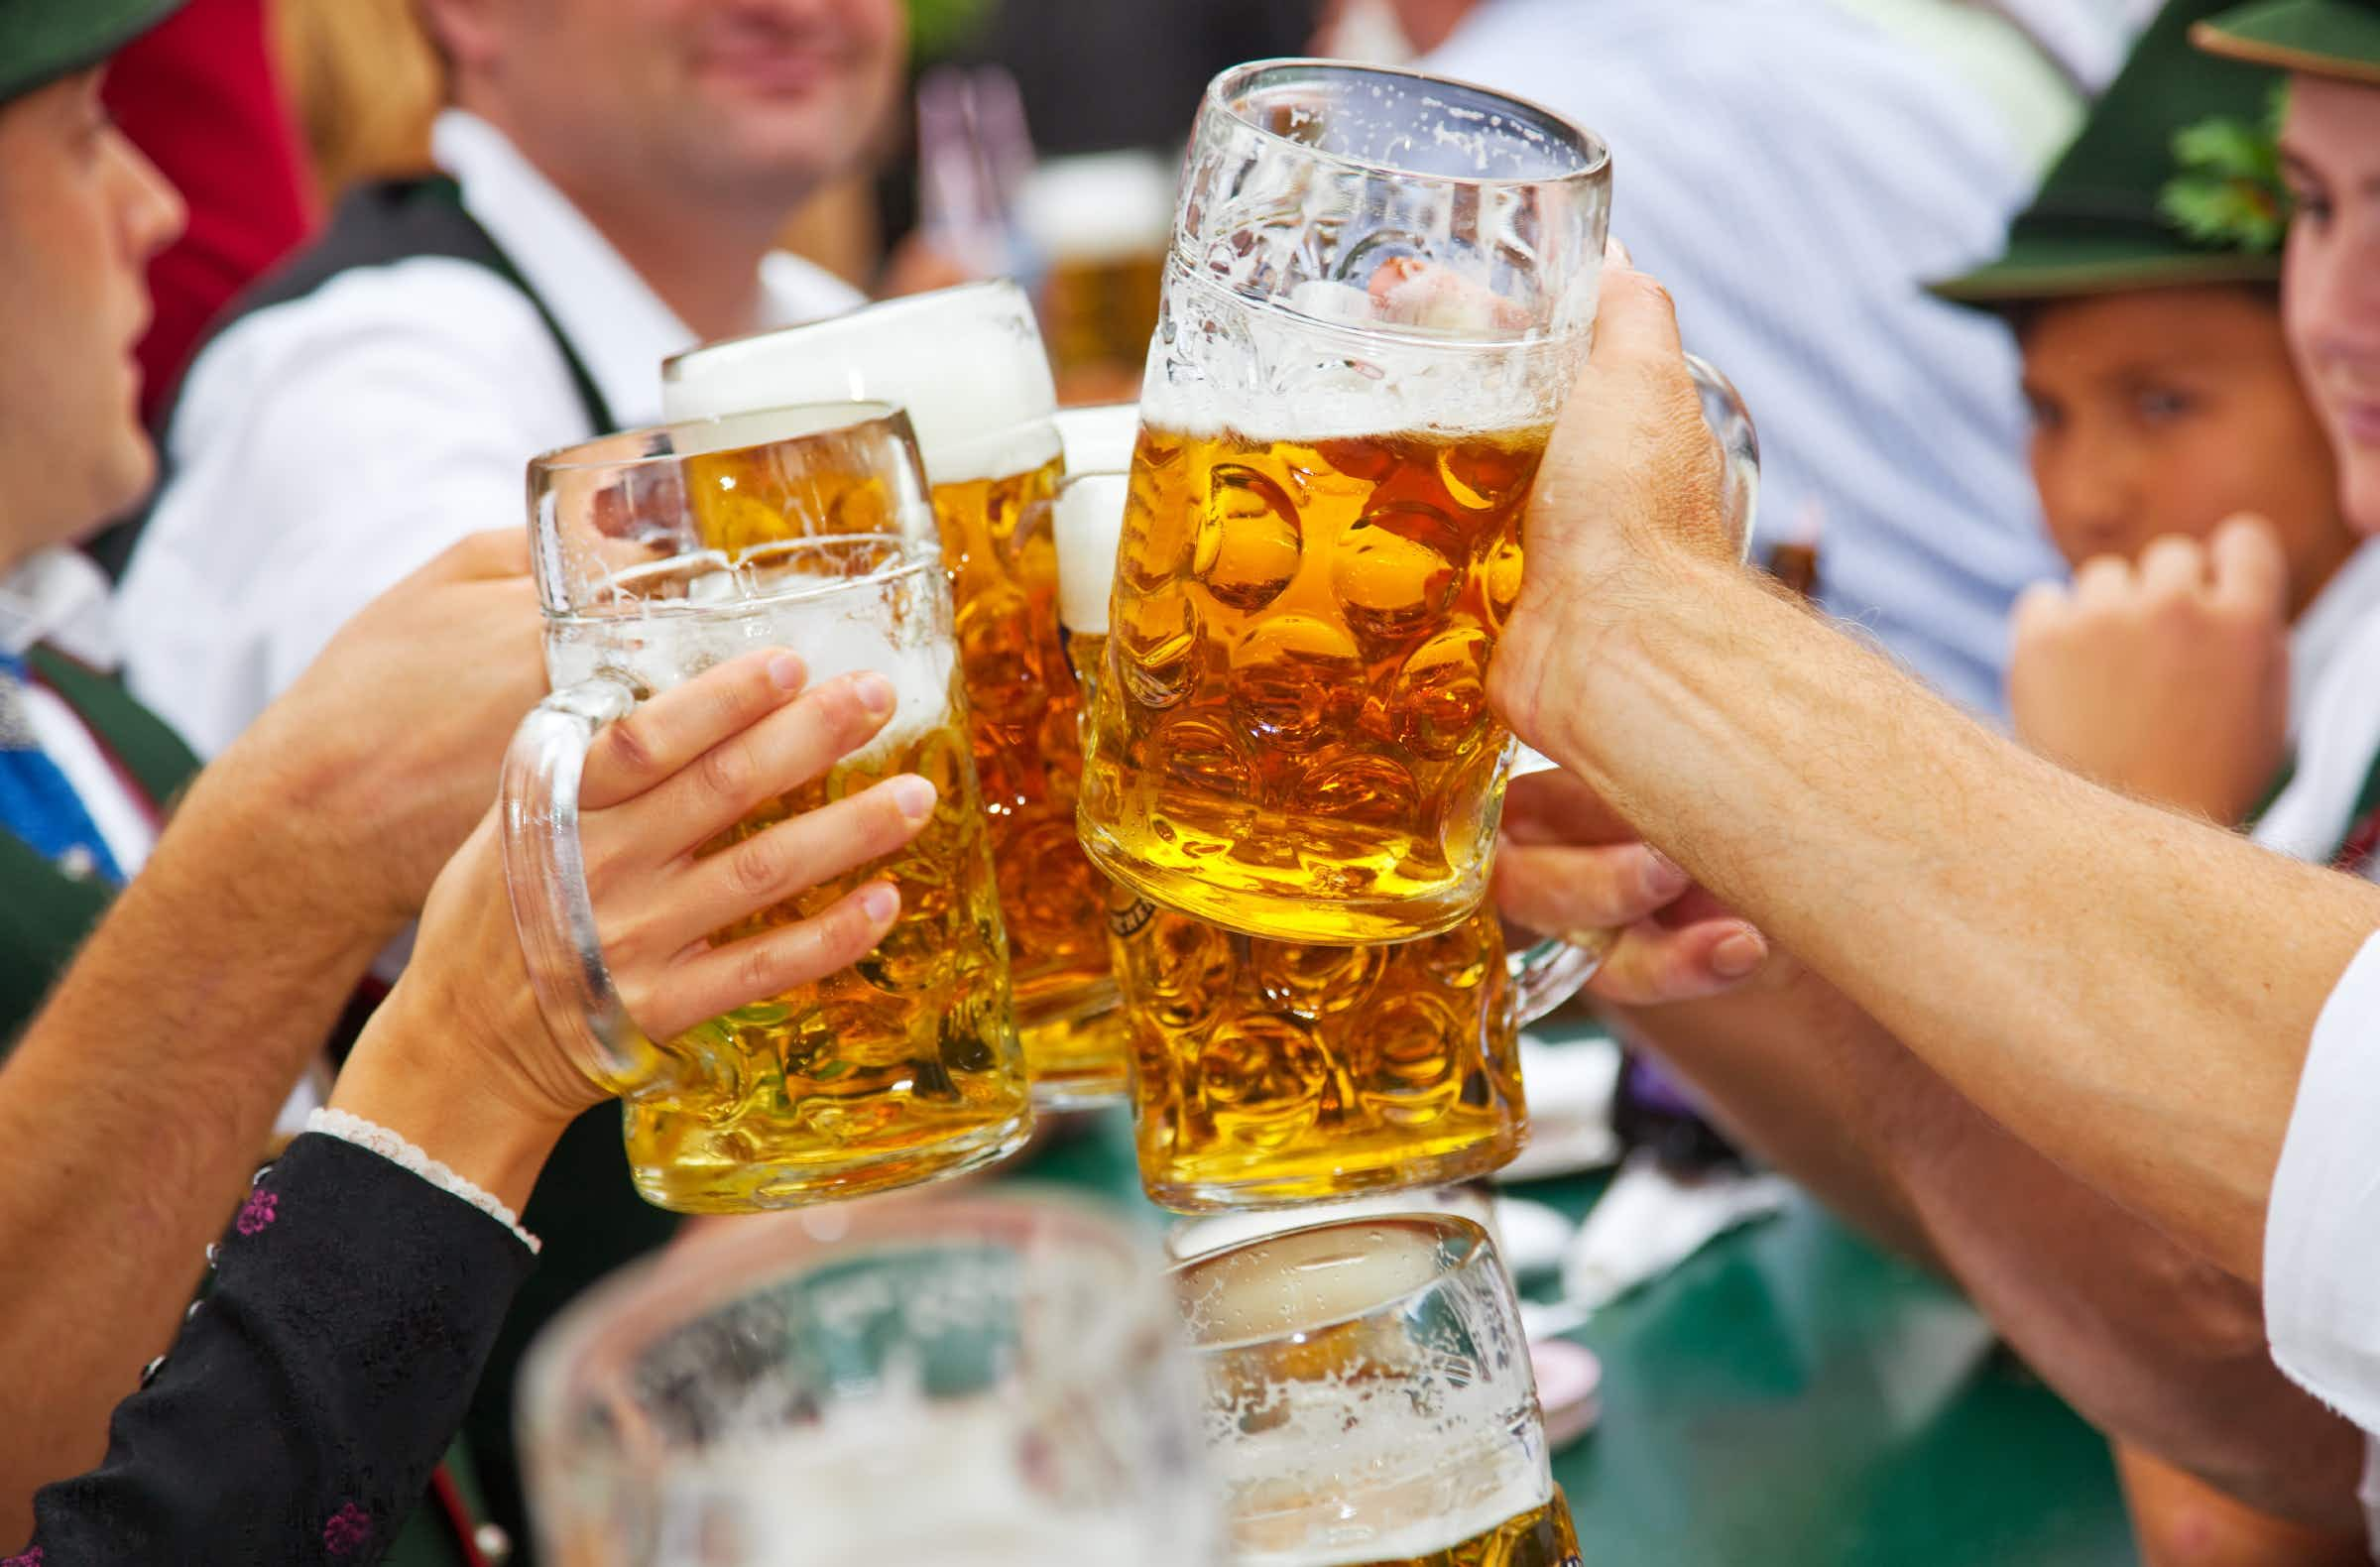 This is how much a beer will set you back at Oktoberfest in Munich this year